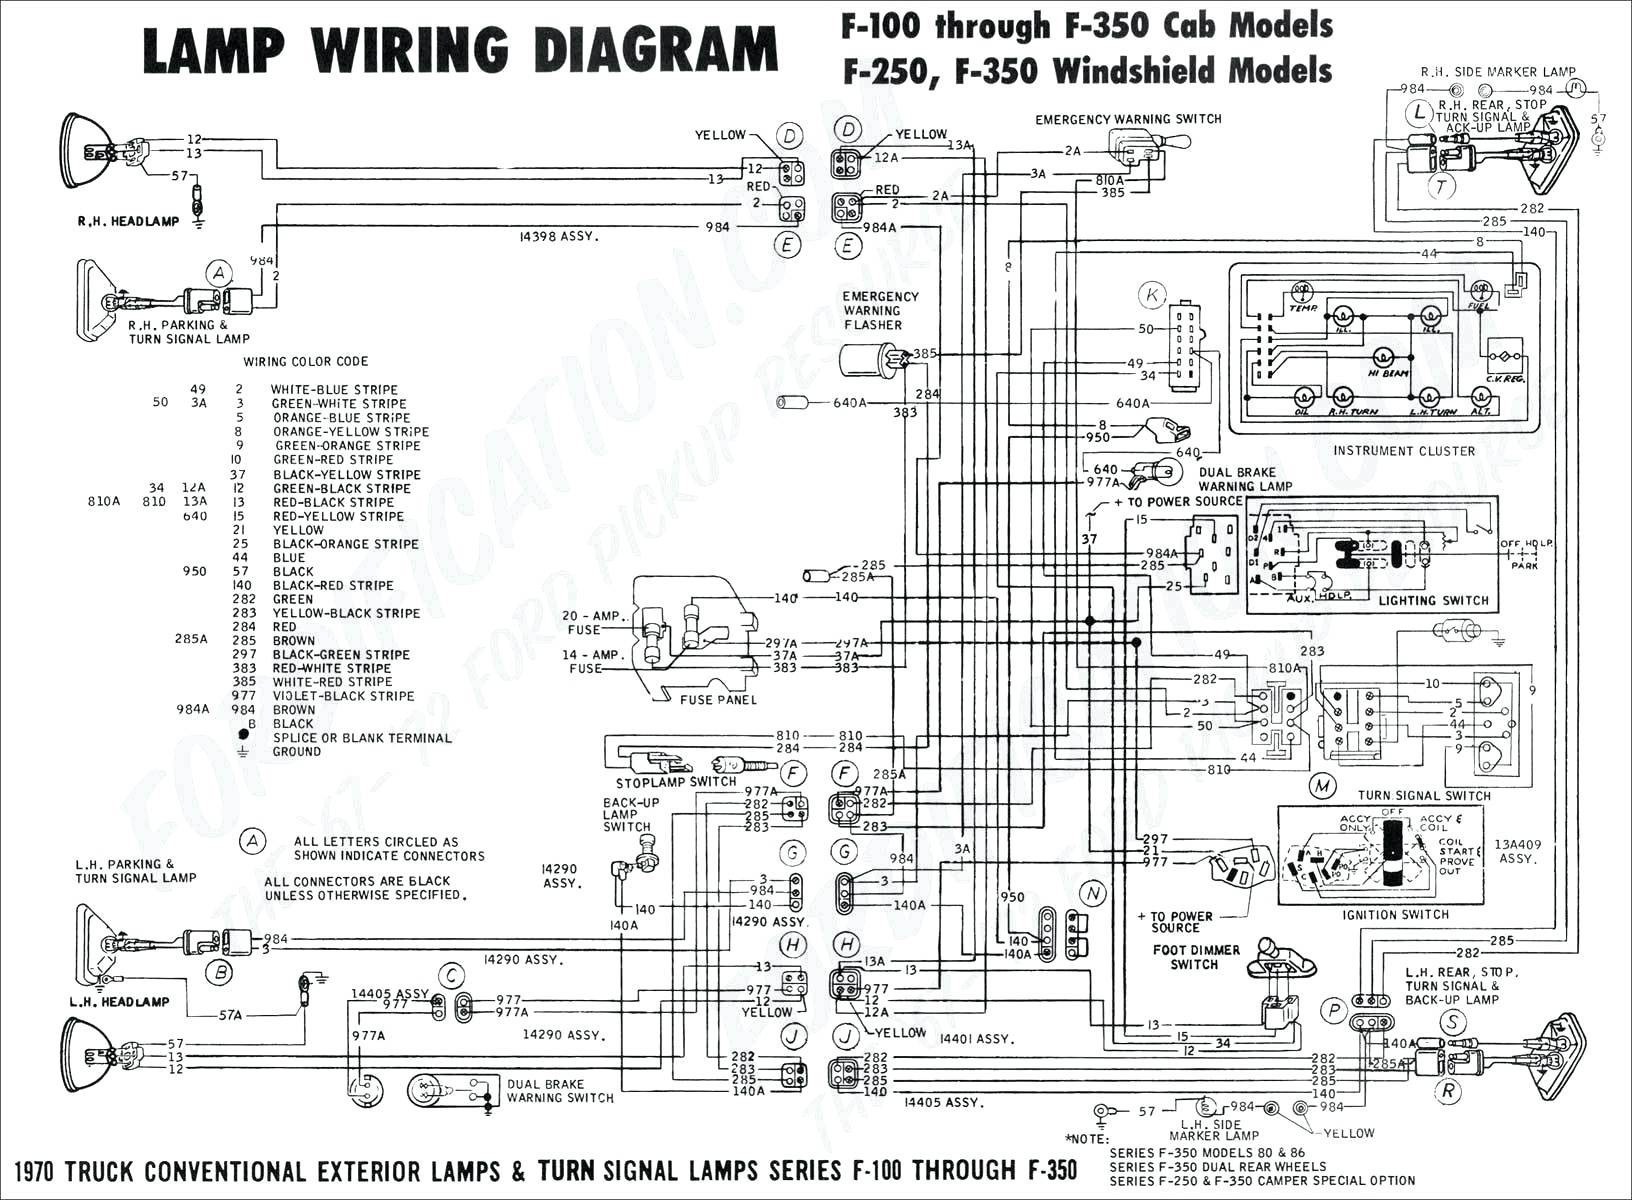 chevy silverado tail light wiring diagram Download-Wiring Diagram For Bulkhead Lights 2019 2005 Chevy Silverado Tail Light Wiring Diagram Unique Lovely Trailer 20-c